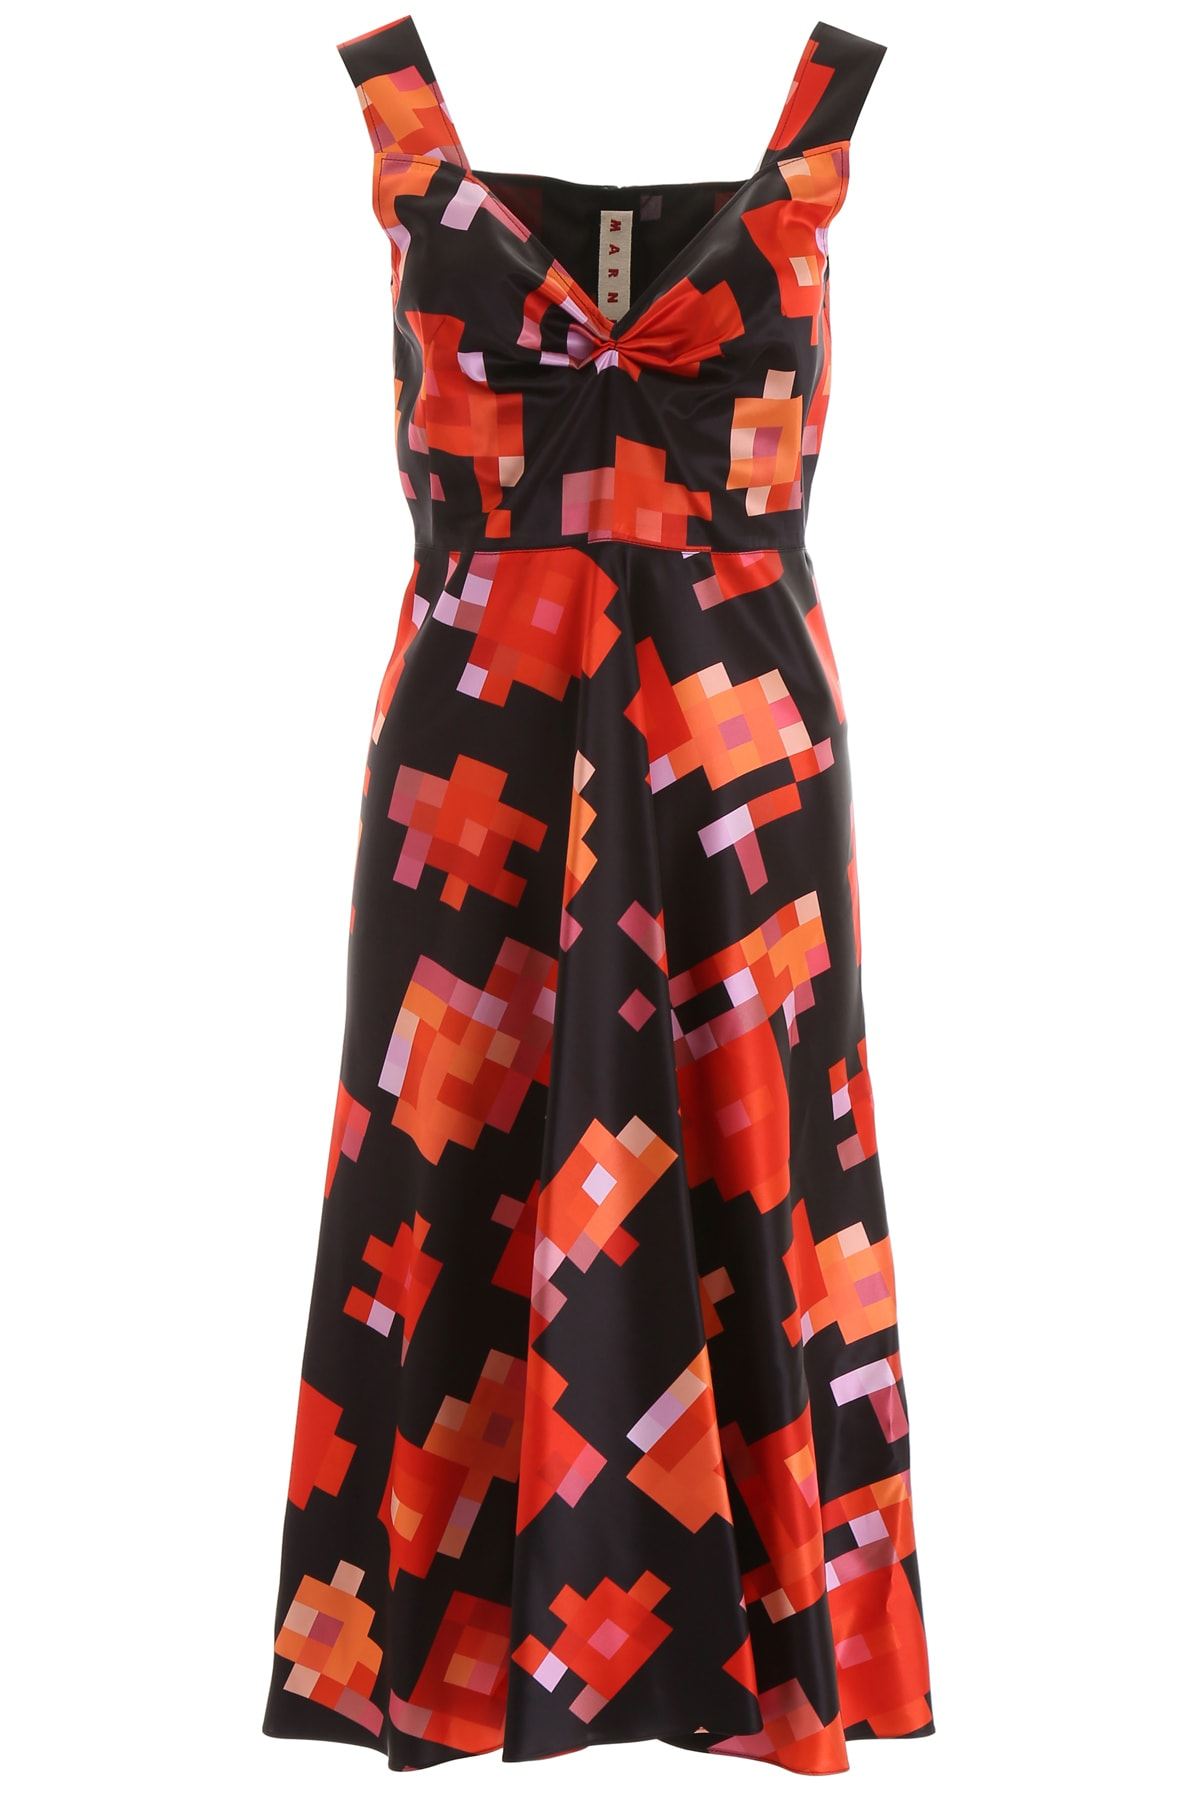 Marni Pixel Dress